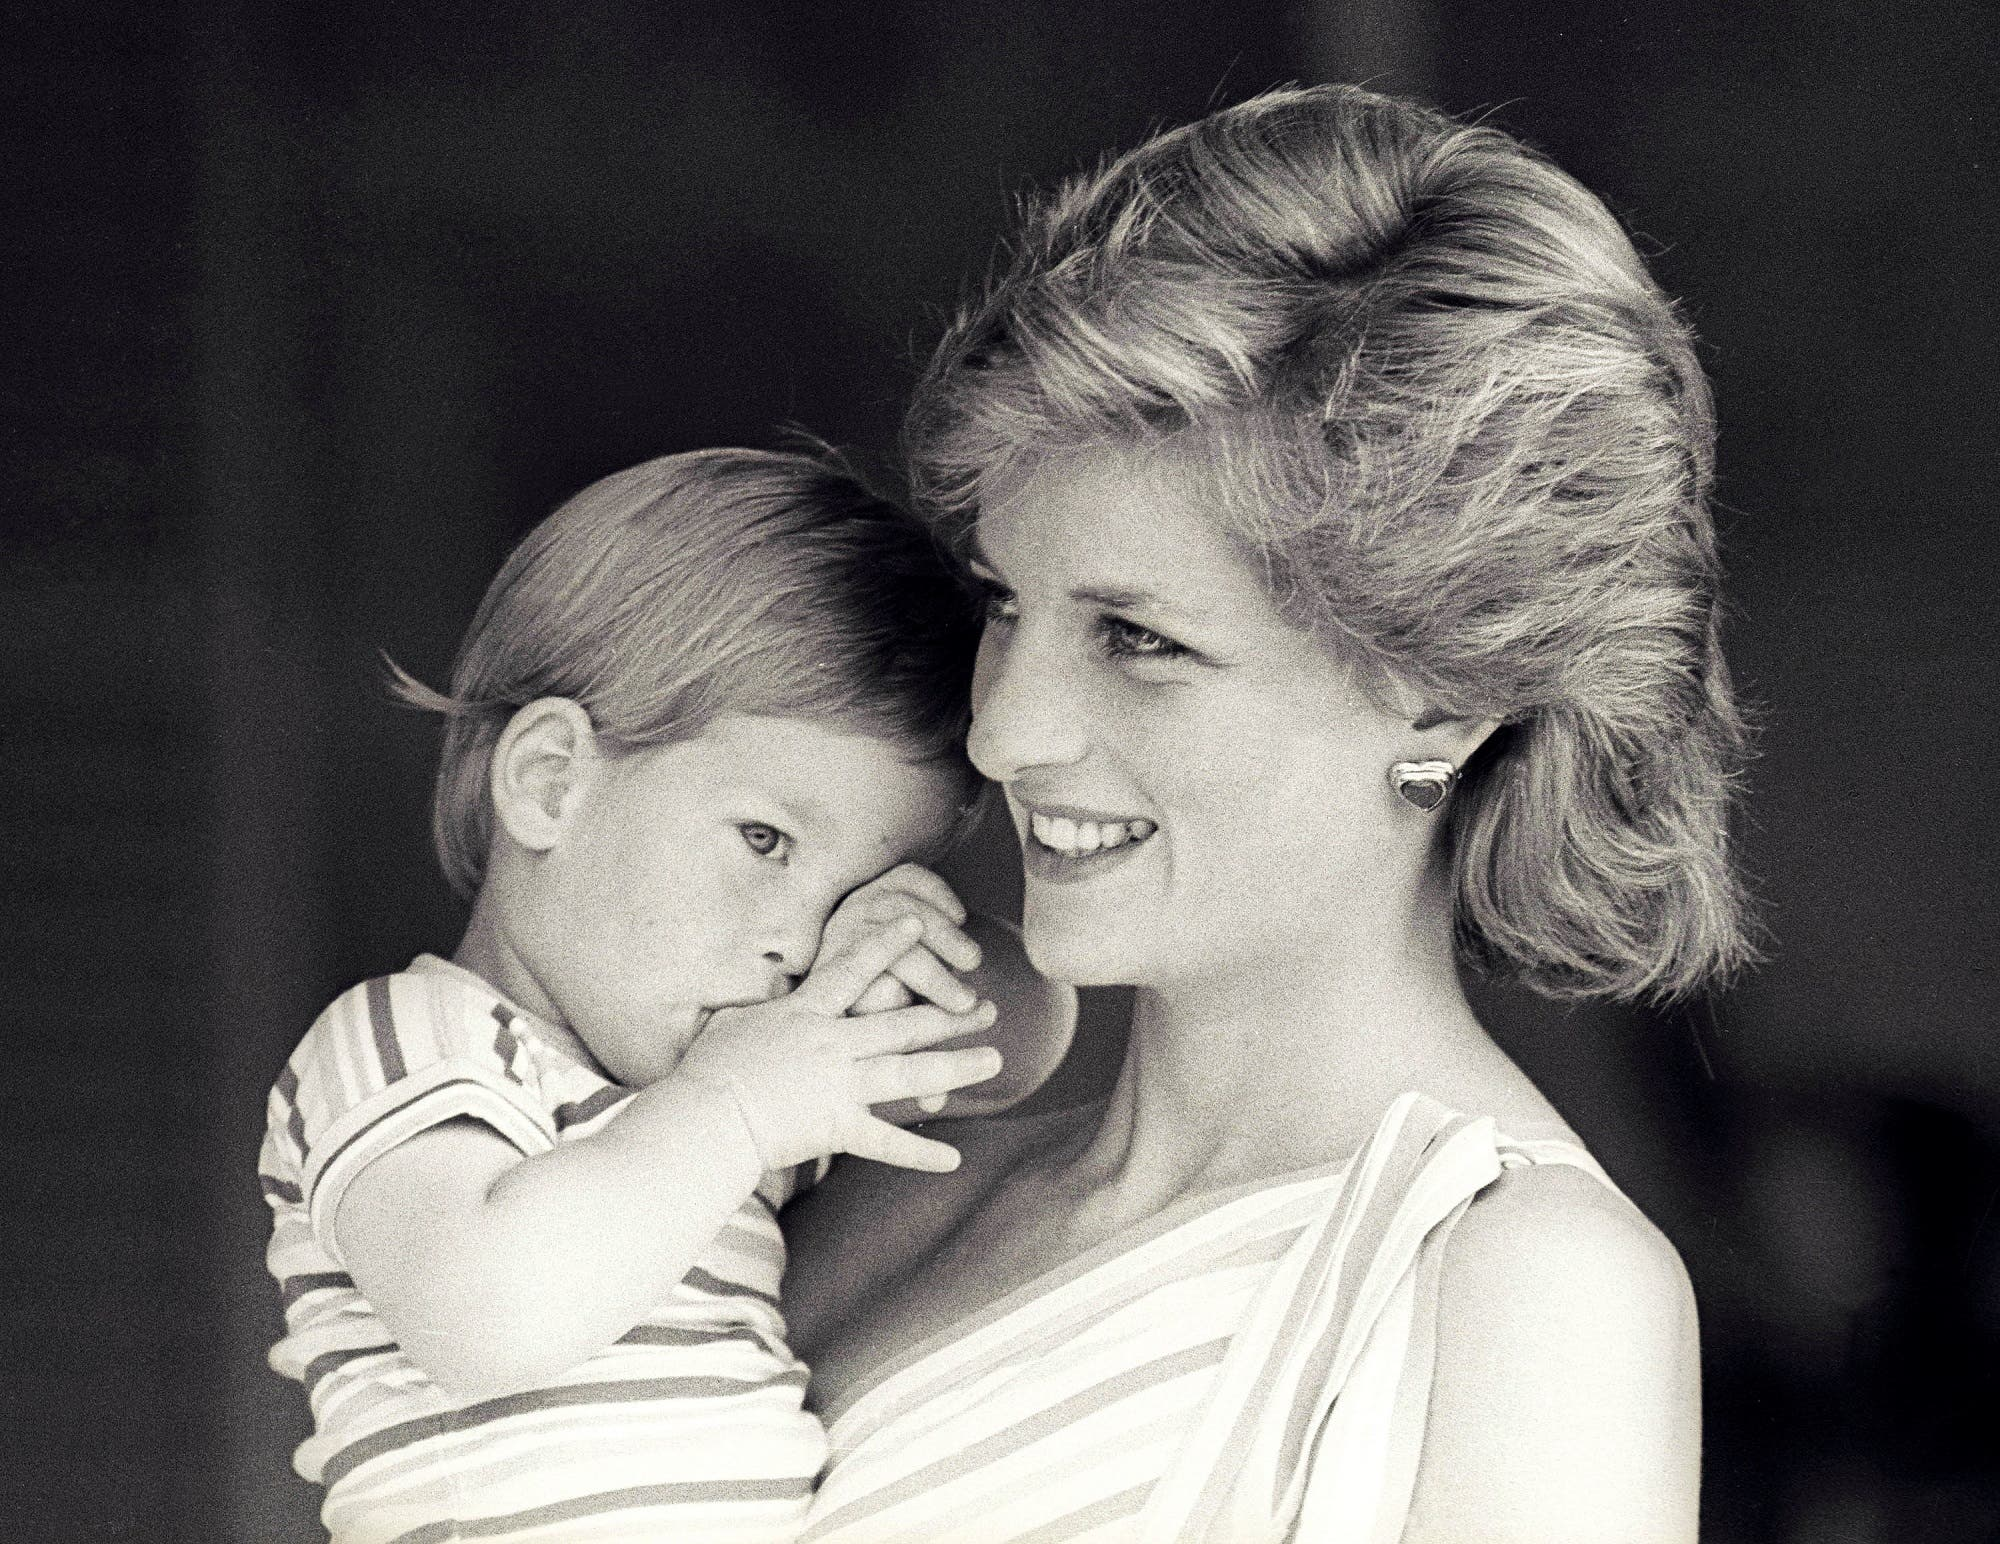 FILE PHOTO - Britain's Princess Diana holds Prince Harry during a morning picture session at Marivent Palace, where the Prince and Princess of Wales are holidaying as guests of King Juan Carlos and Queen Sofia, in Mallorca, Spain August 9, 1988. REUTERS